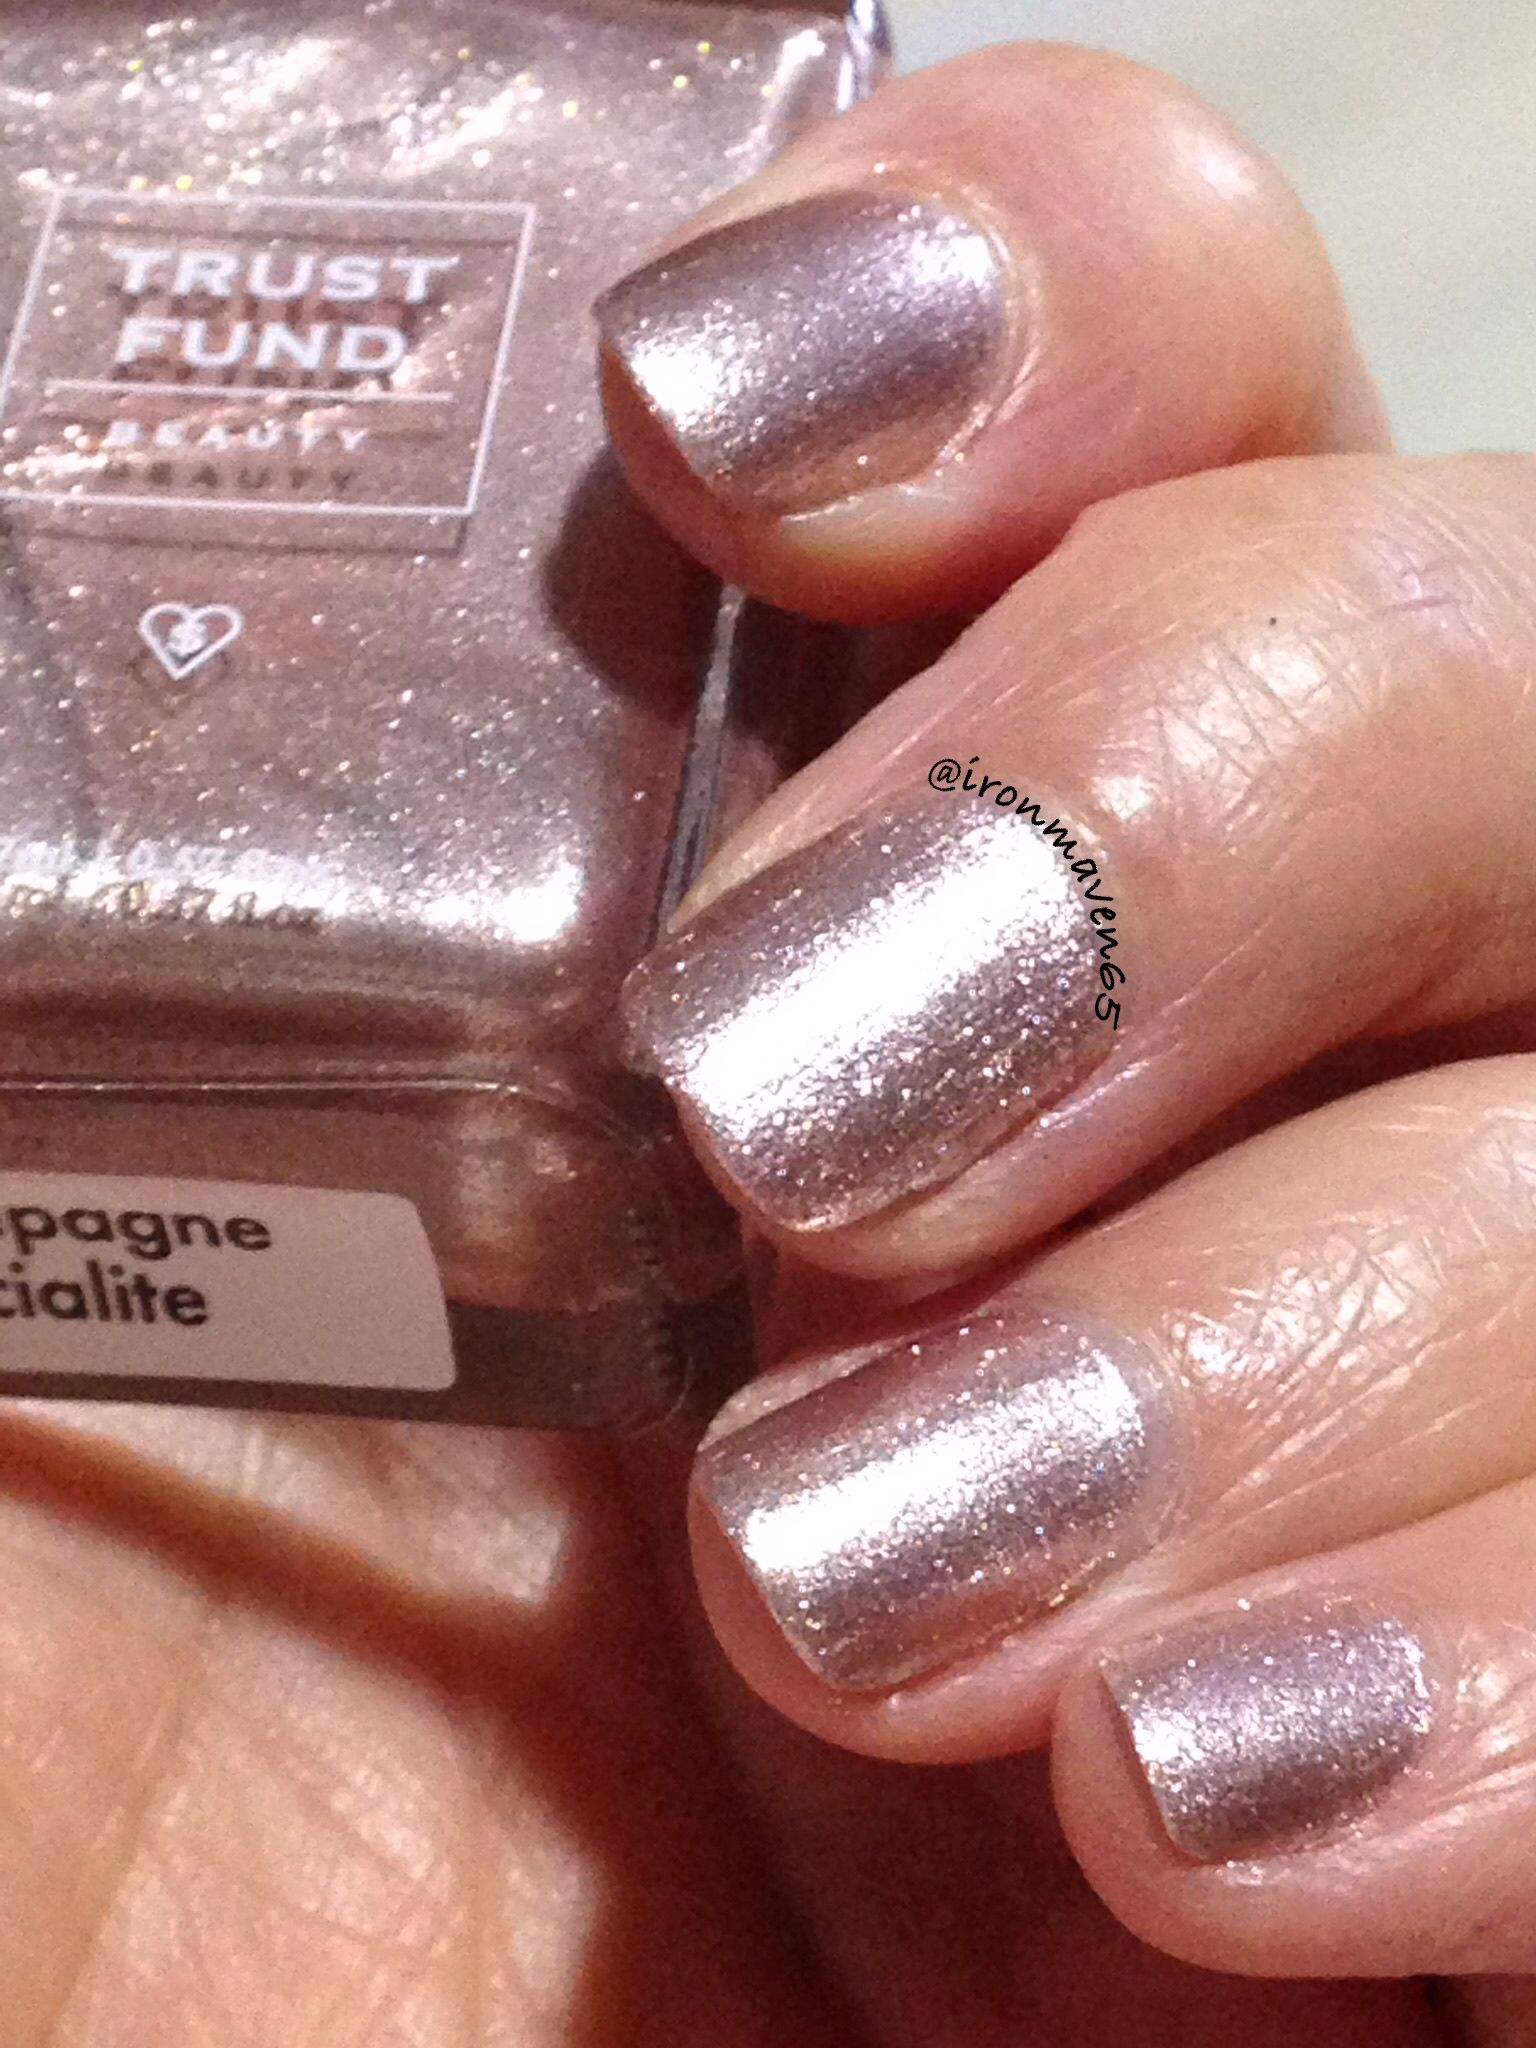 Trust Fund Beauty: Champagne Socialite- a rose gold foil | I love ...